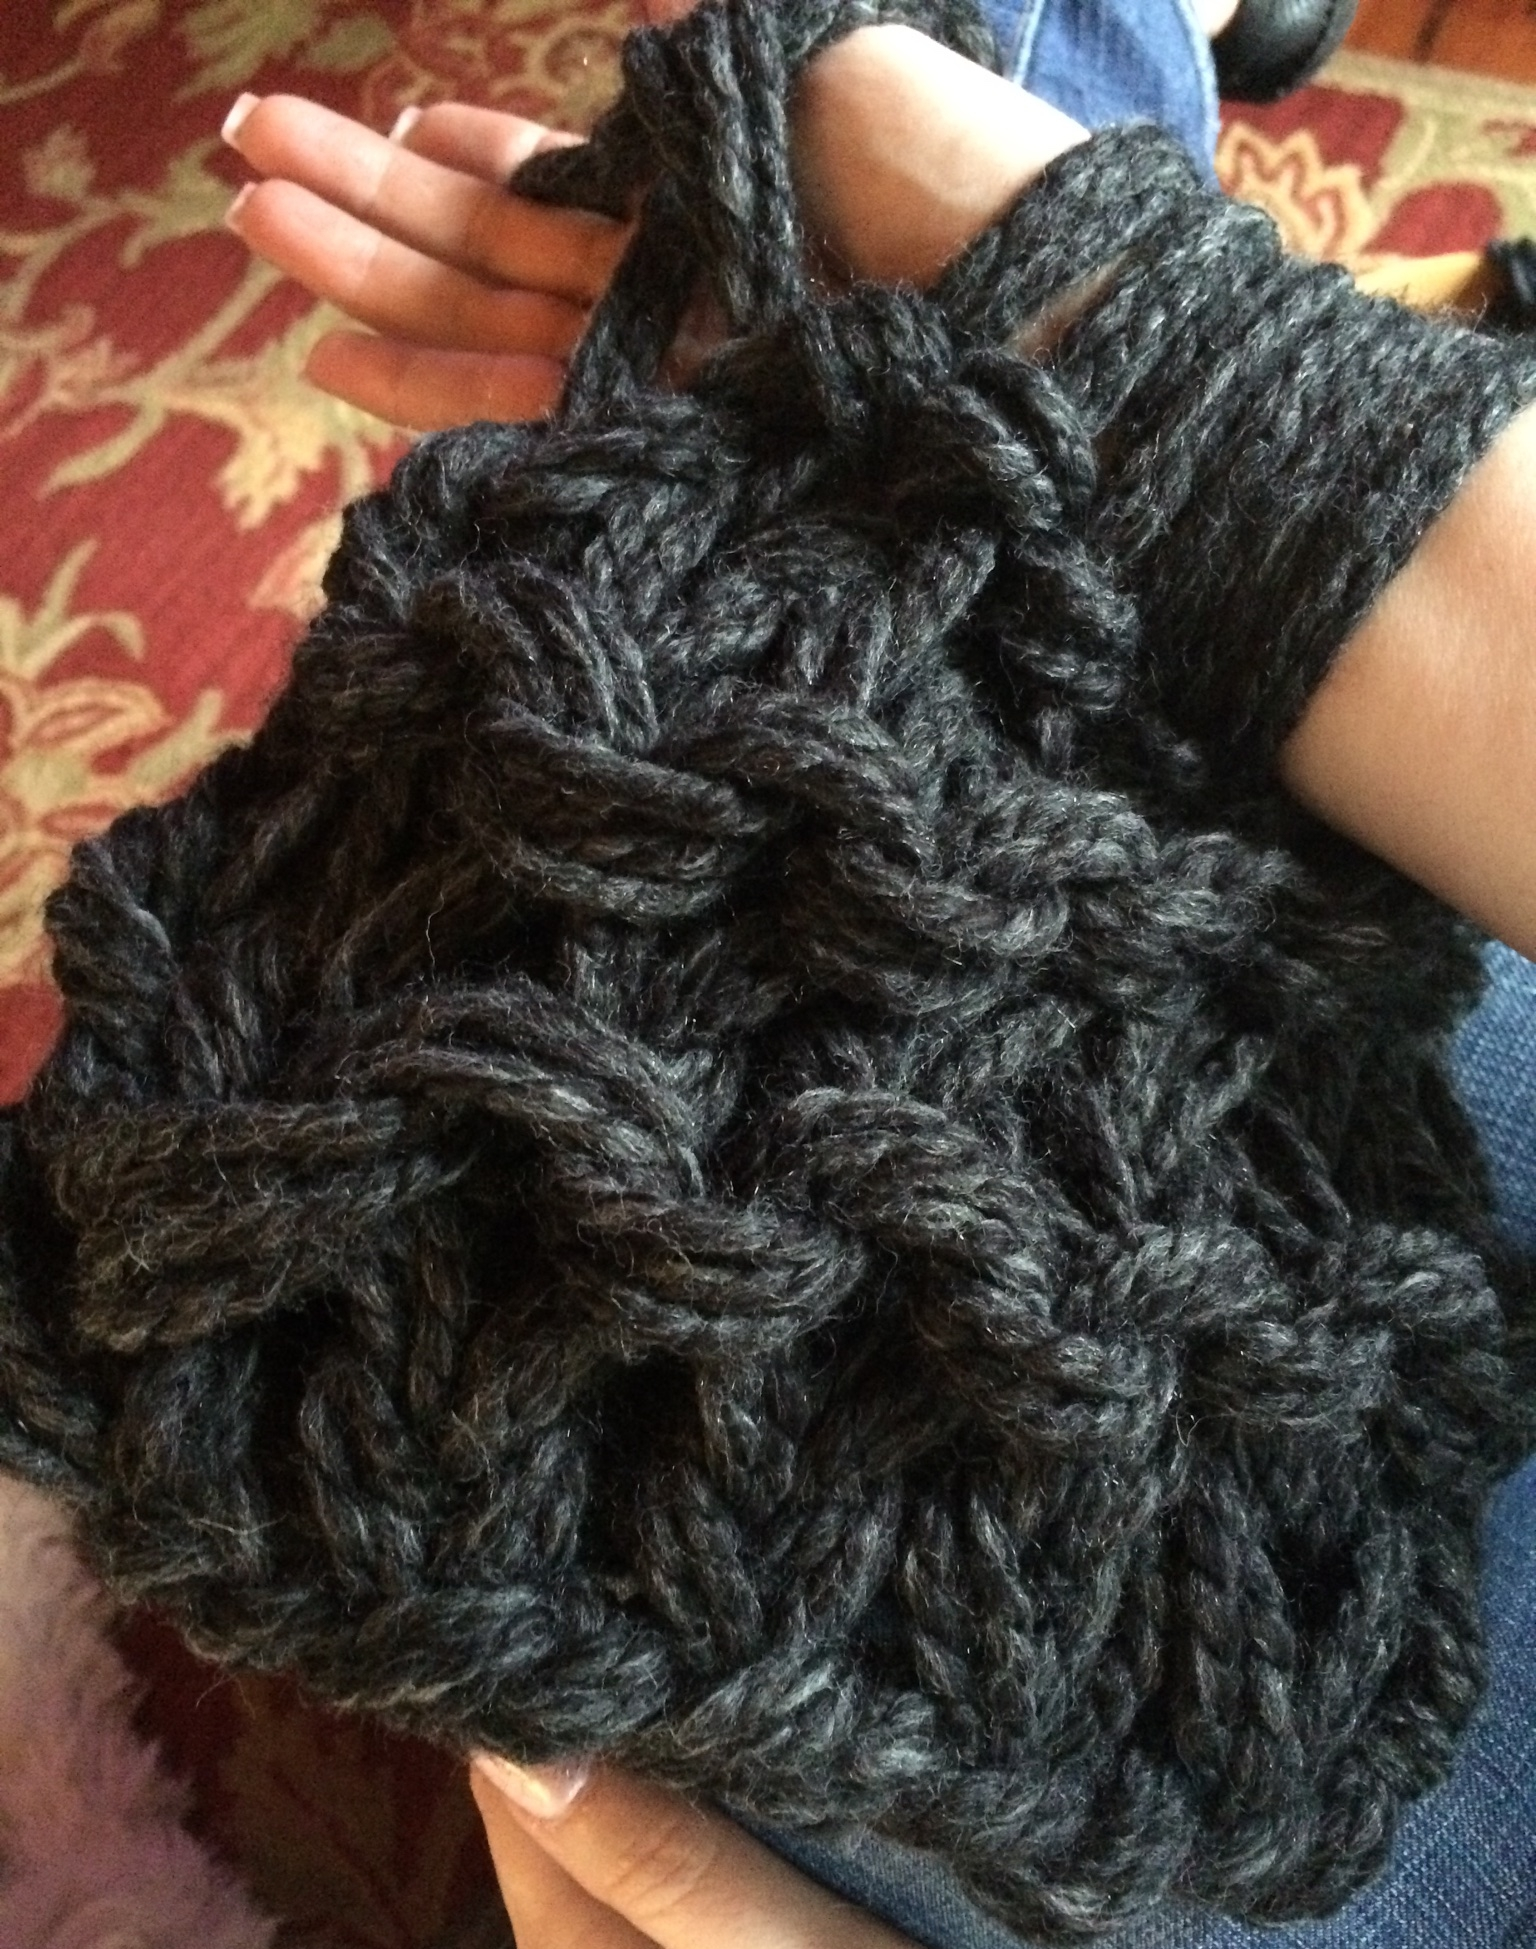 Many beautiful shades of charcoal in this yarn.